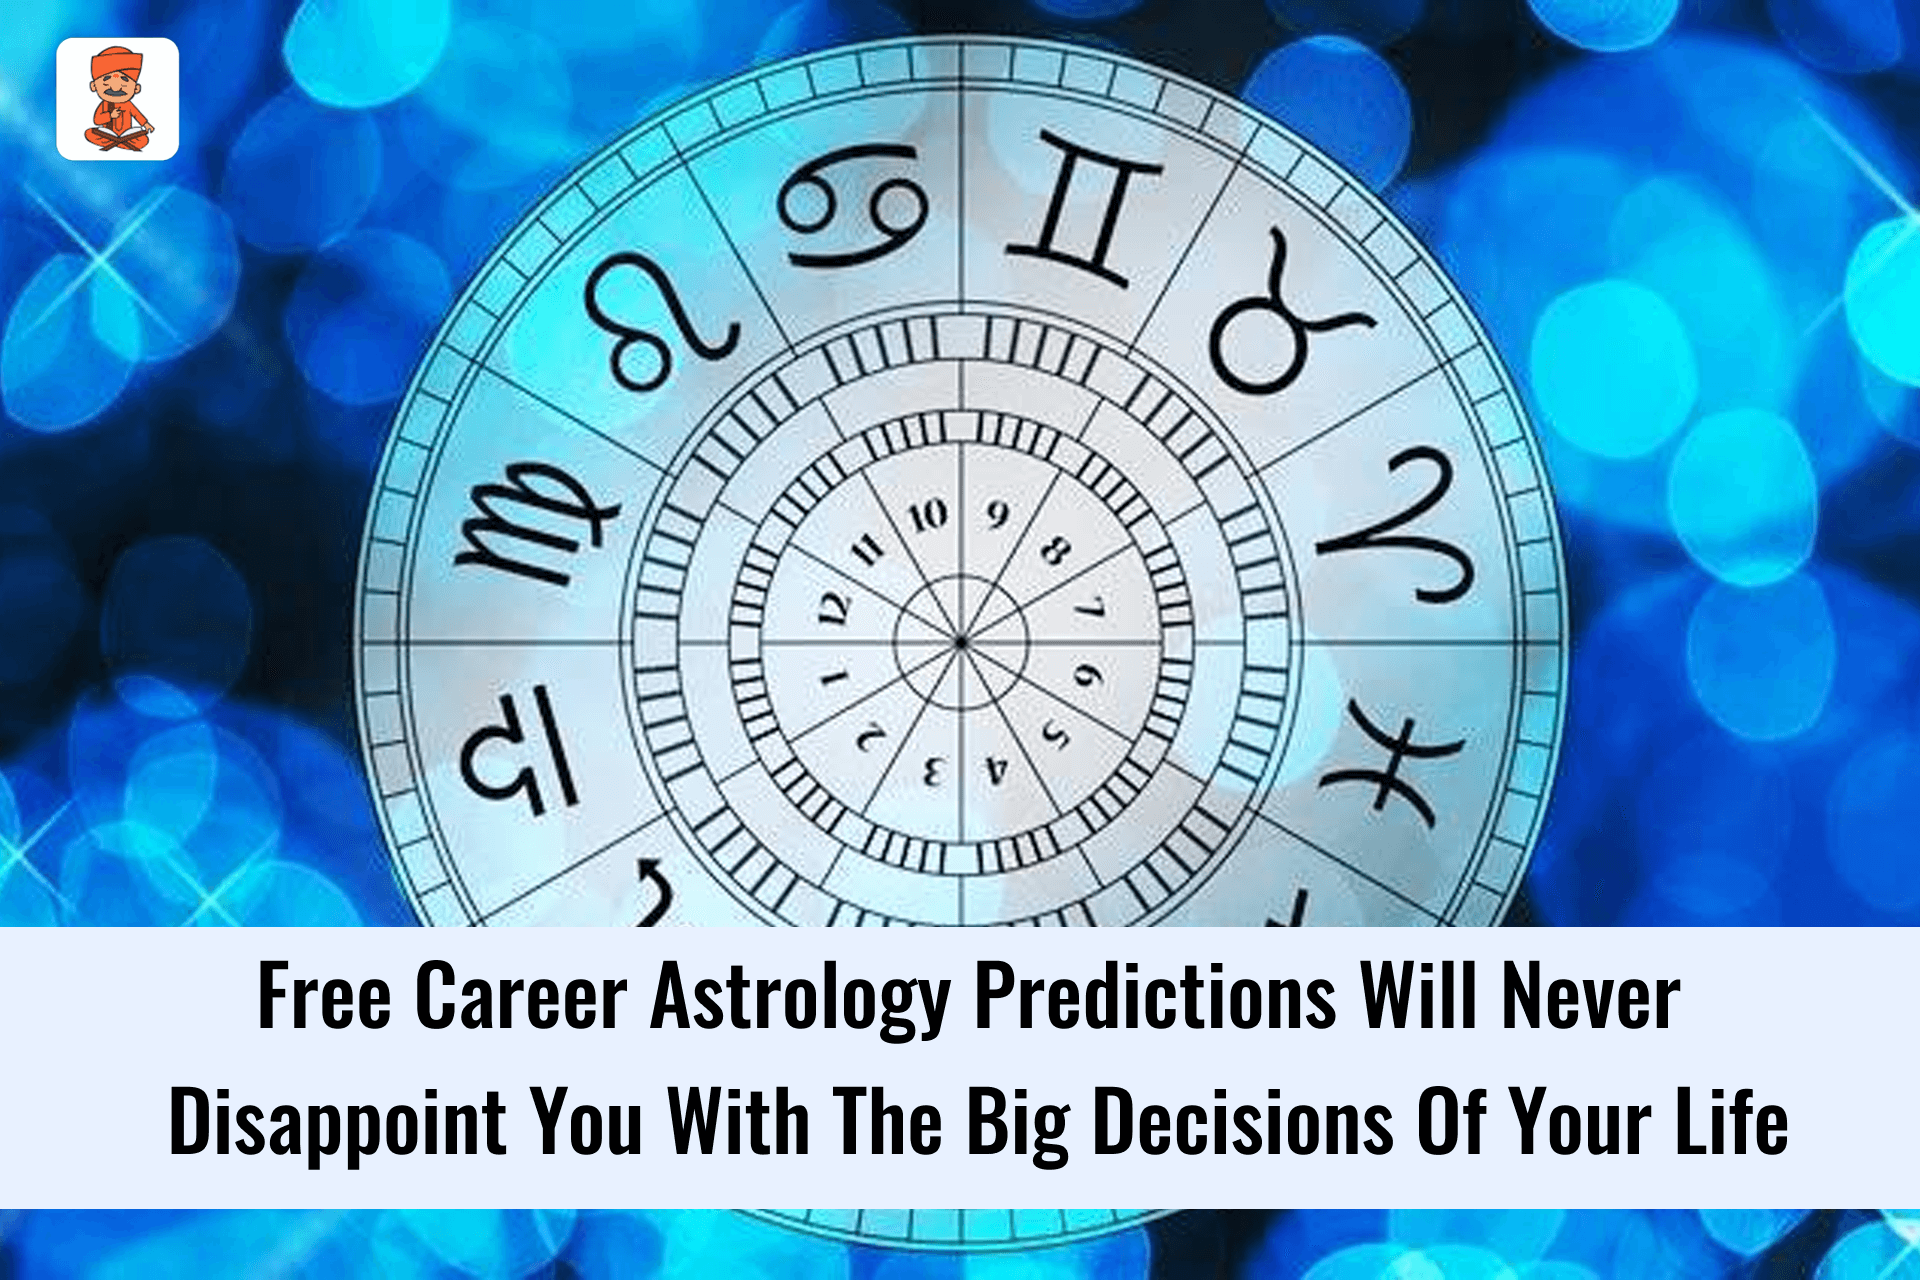 Free Career Astrology Prediction Will Never Disappoint You With The Big Decisions Of Your Life